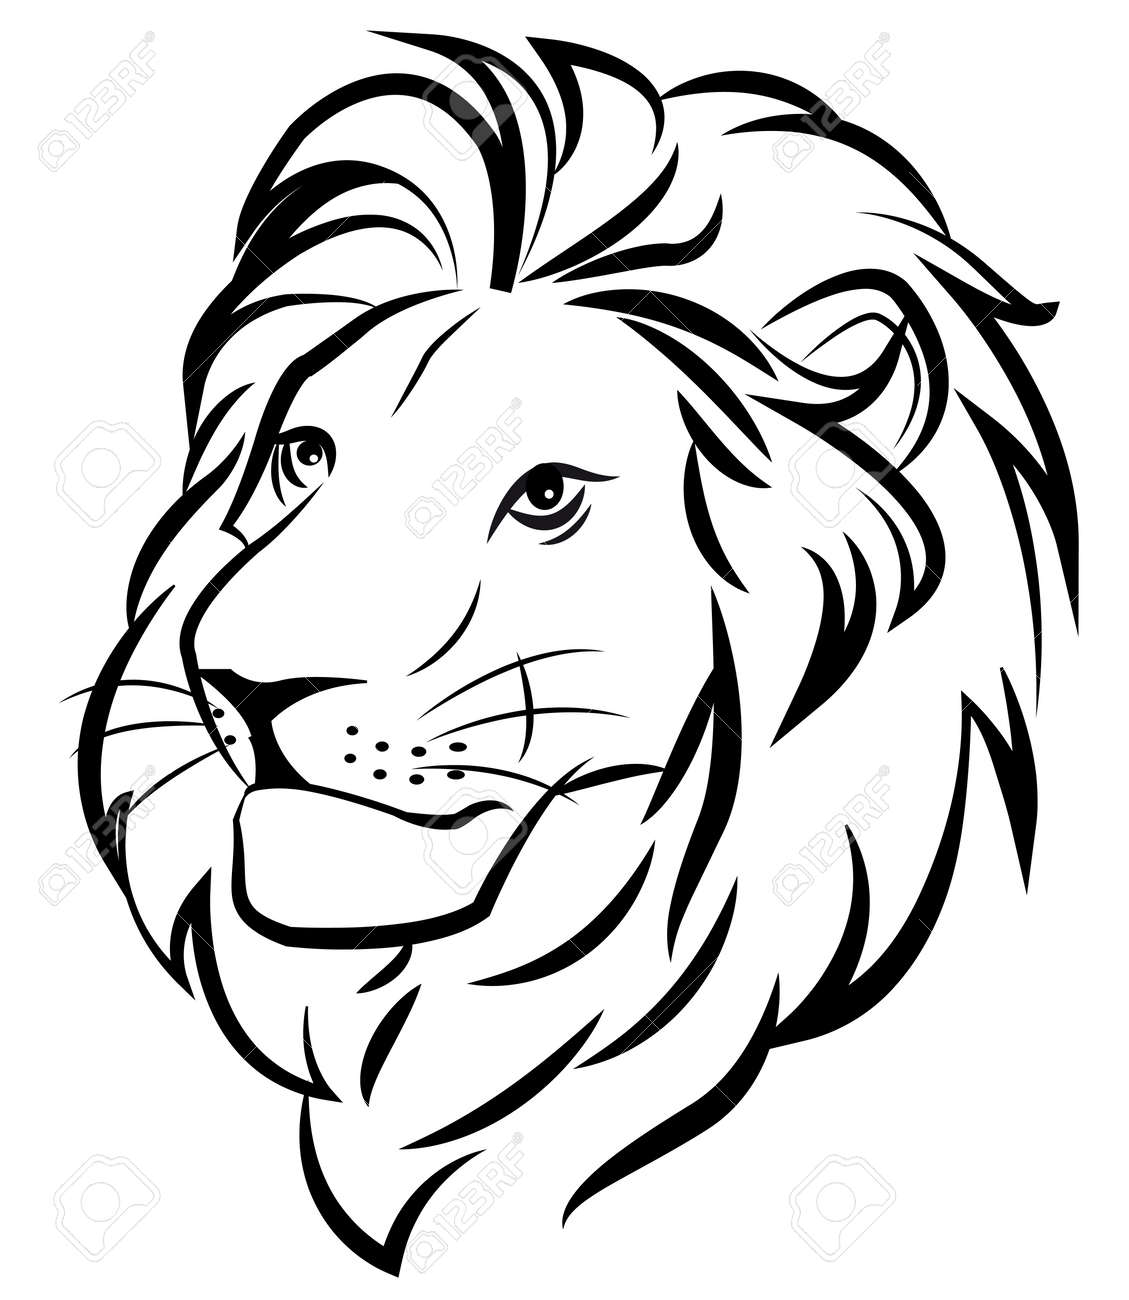 Lion Royalty Free Cliparts Vectors And Stock Illustration Image 40395953 Learn how to draw lion head outline pictures using these outlines or print just for coloring. lion